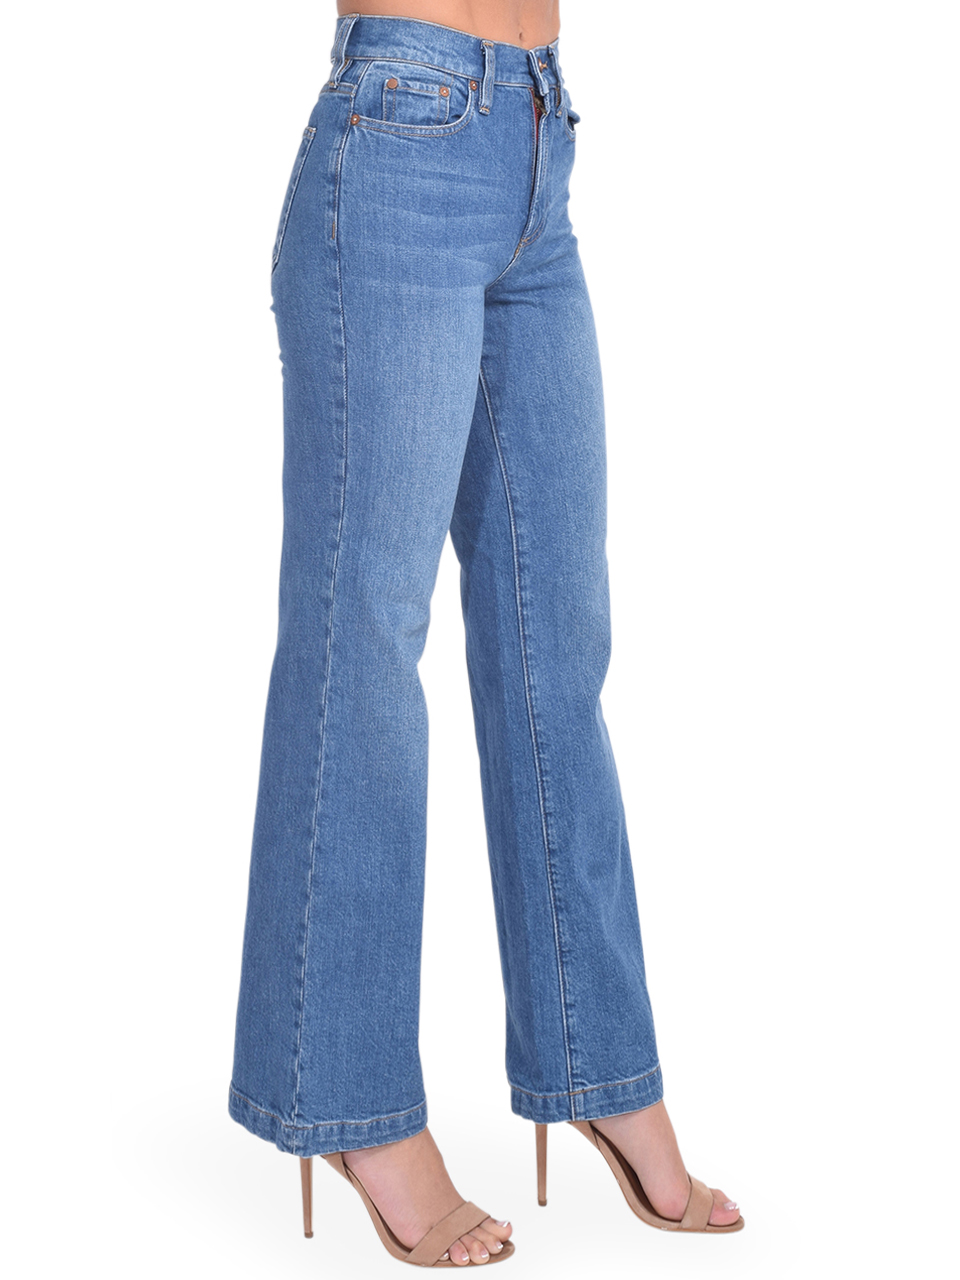 Alice + Olivia Liza Mid Rise Straight Ankle Jean in Best Intentions Side View